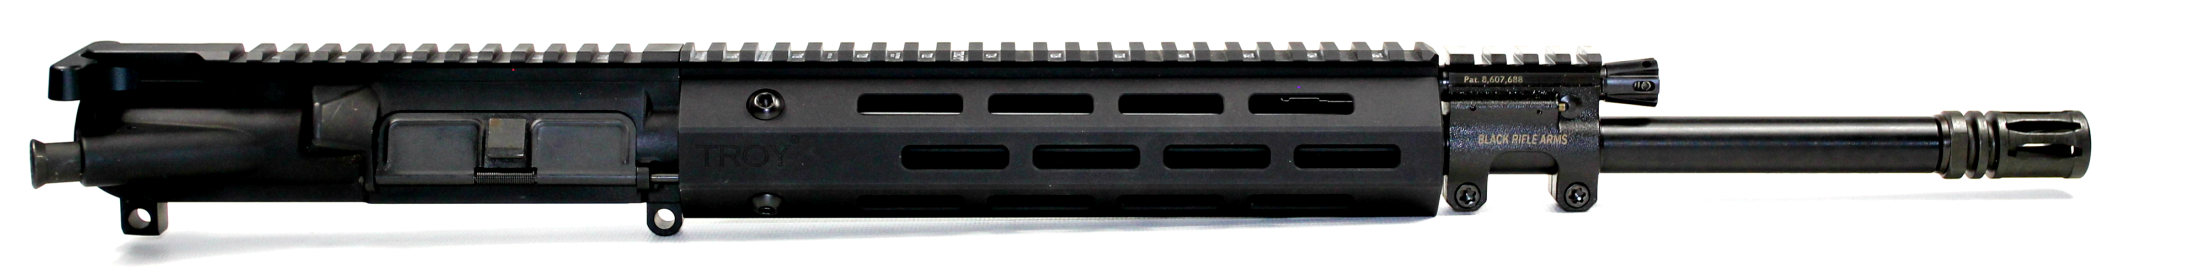 5.56x45 C.A.P.S. Mid-Length Piston Upper with Troy M-Lok Handguard